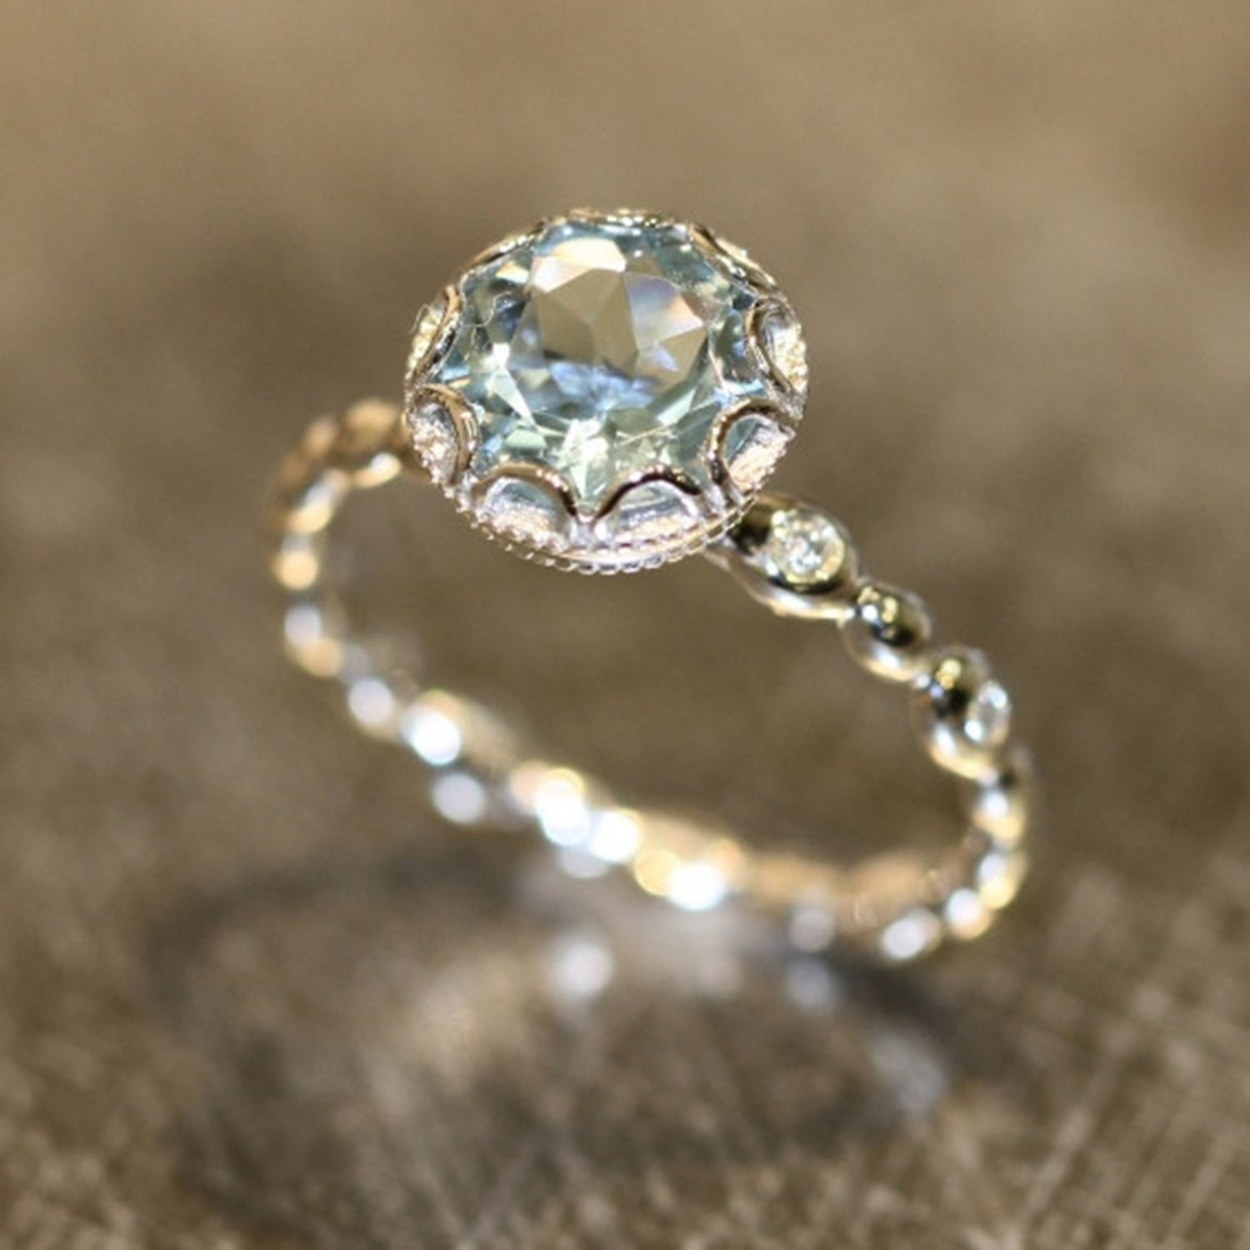 Affordable Engagement Rings Under $1,000 | Glamour With 2017 Vintage Style Non Diamond Engagement Rings (View 4 of 15)